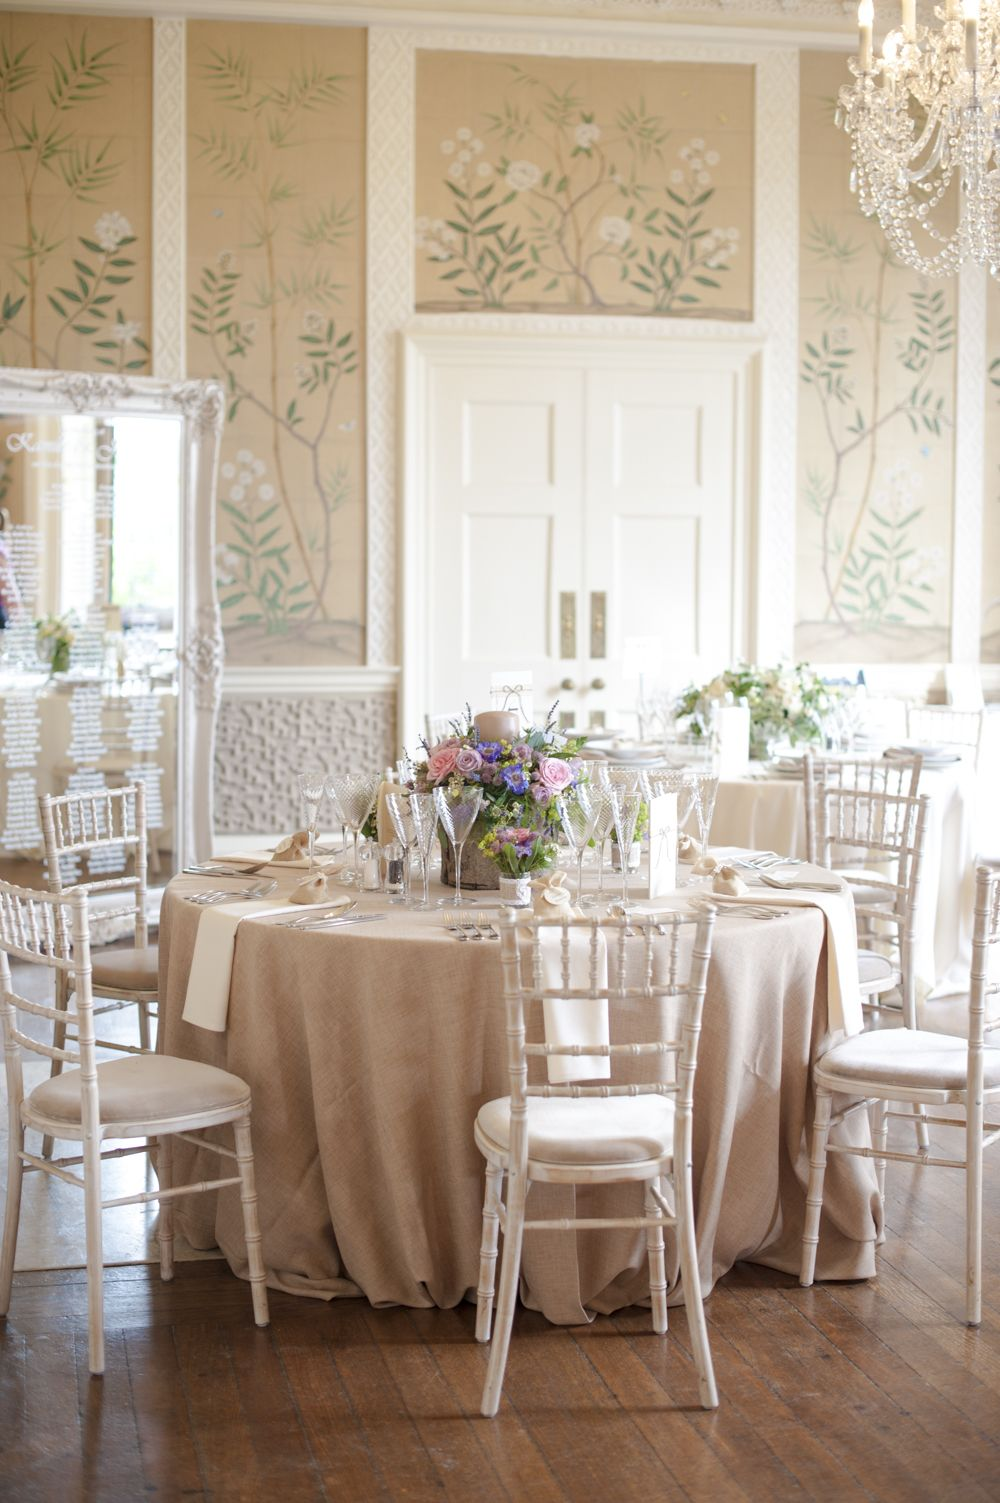 Wedding decorations for house  elegant rustic table setting  Dreamy Receptions  Pinterest